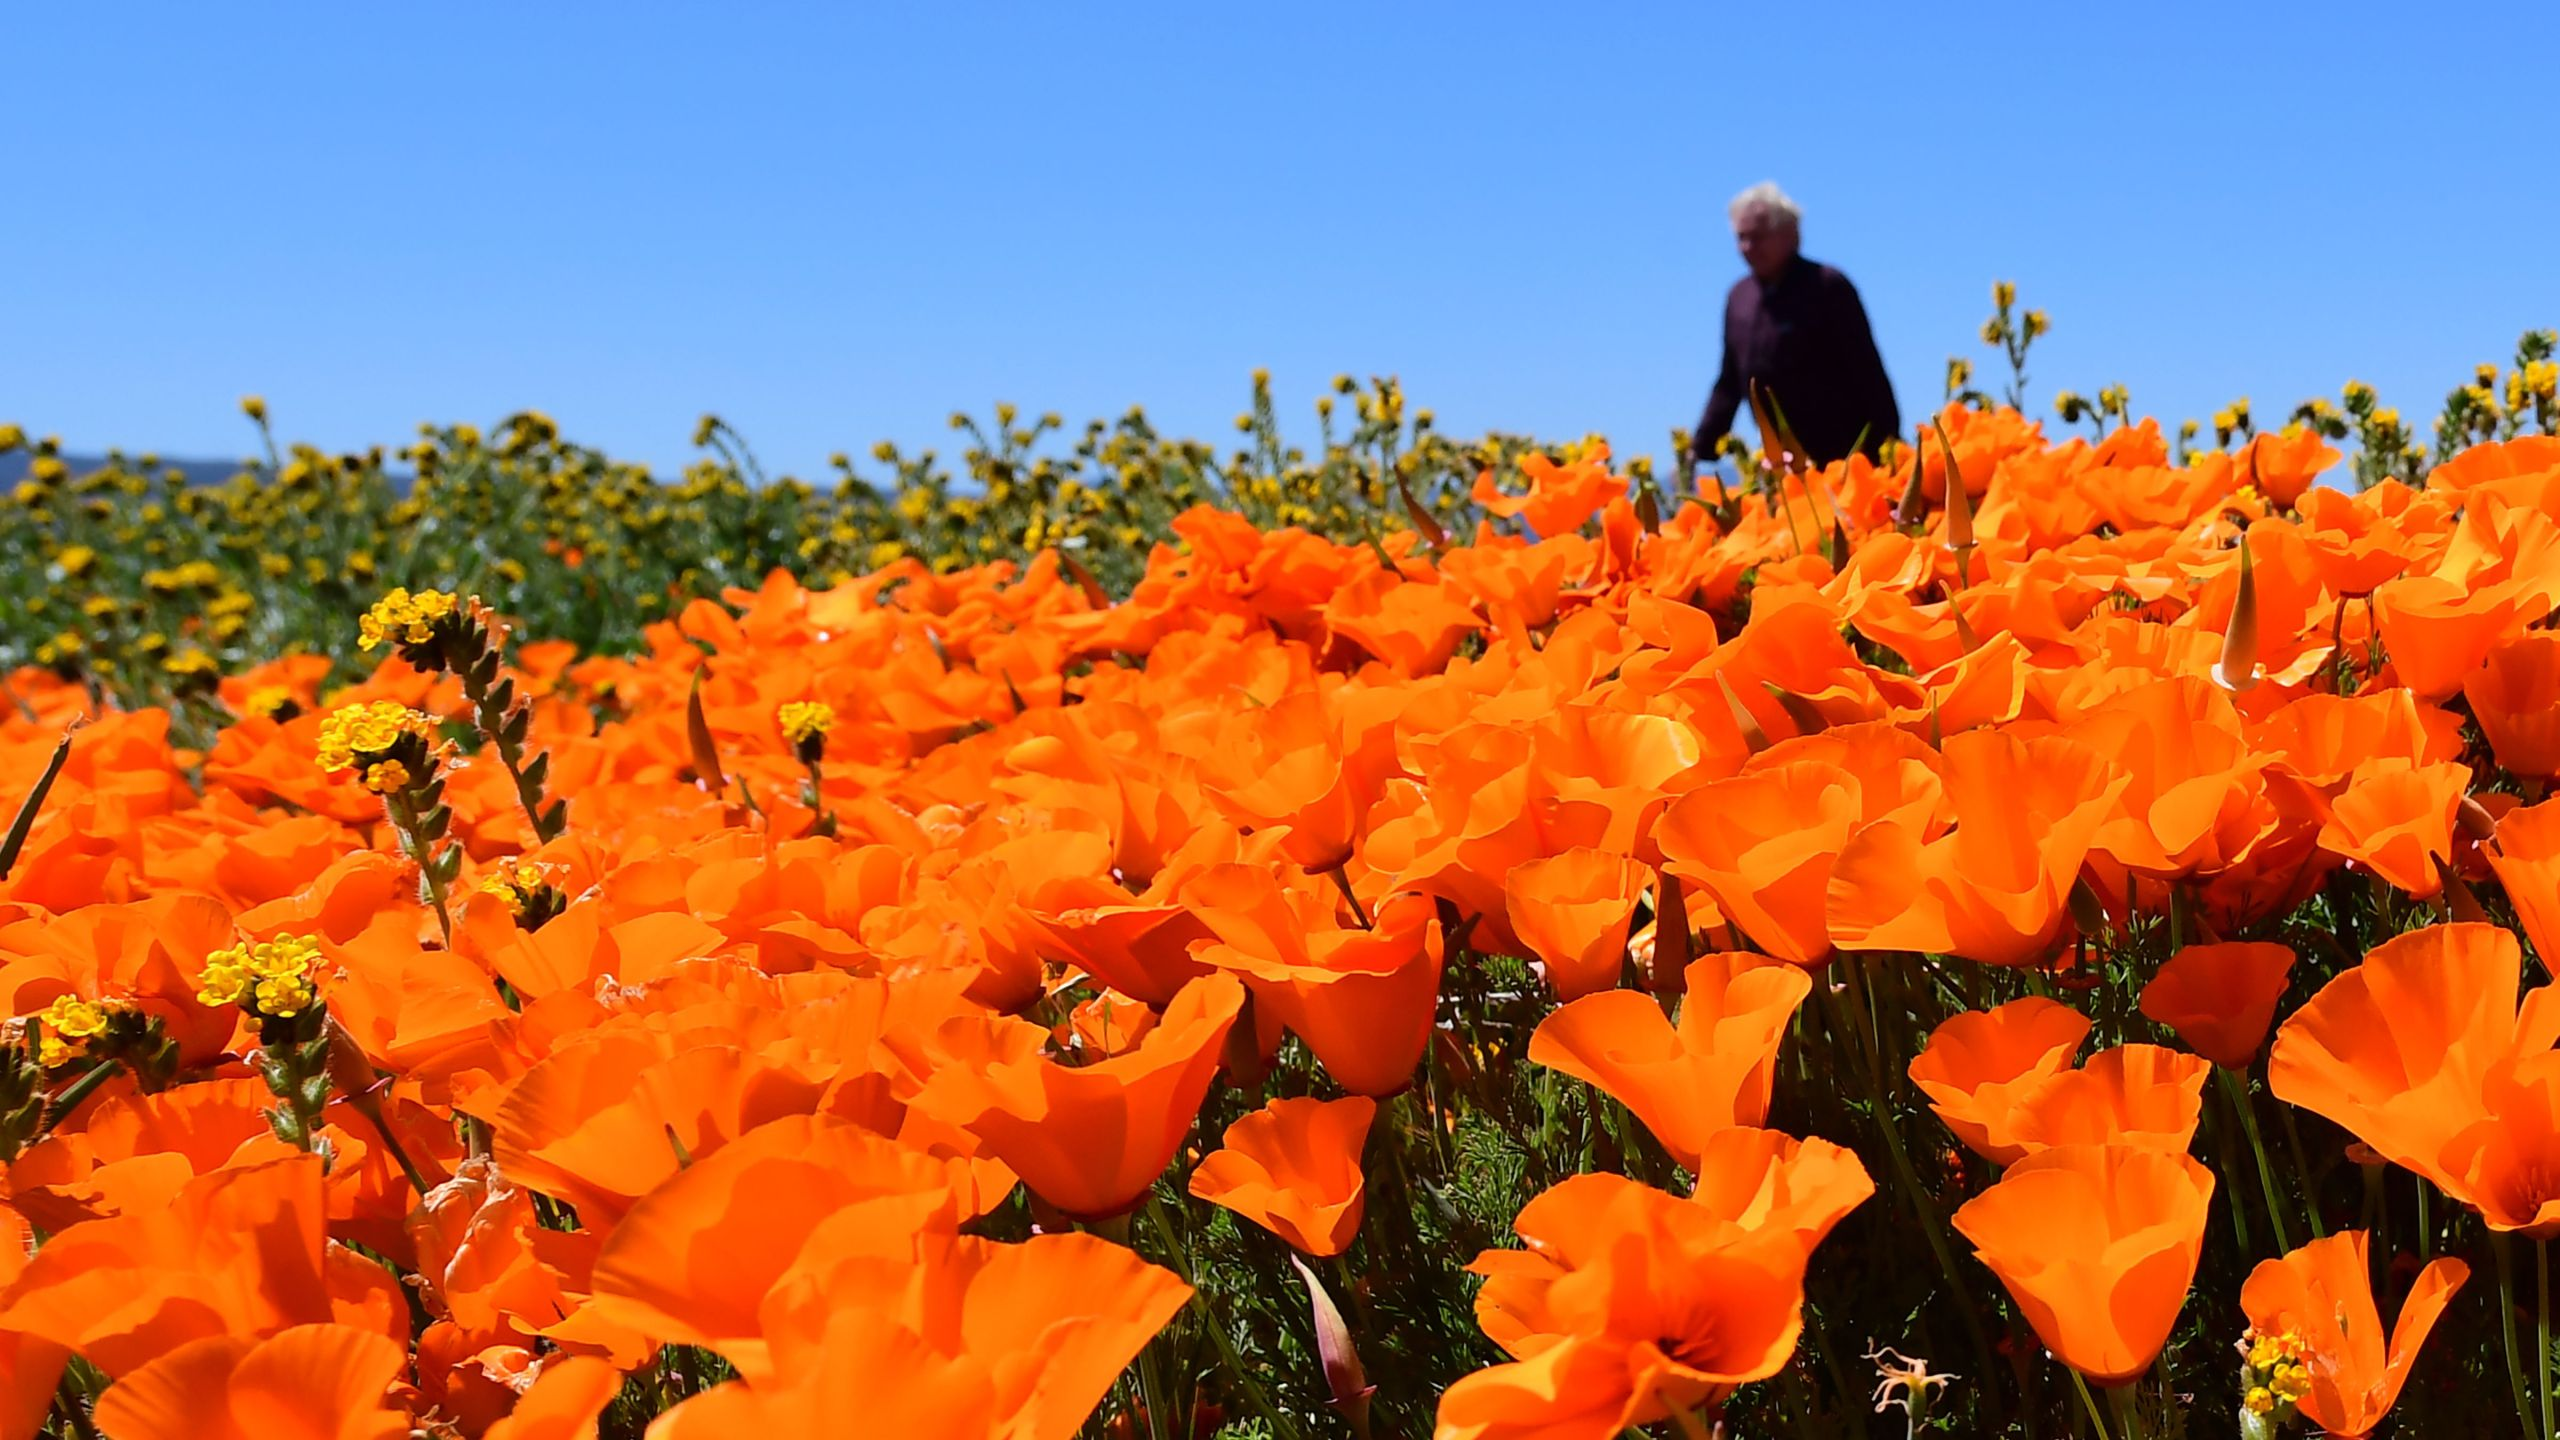 People visit poppy fields near the Antelope Valley California Poppy Reserve on April 16, 2020 in Lancaster, California where the annual spring bloom is underway. (FREDERIC J. BROWN/AFP via Getty Images)